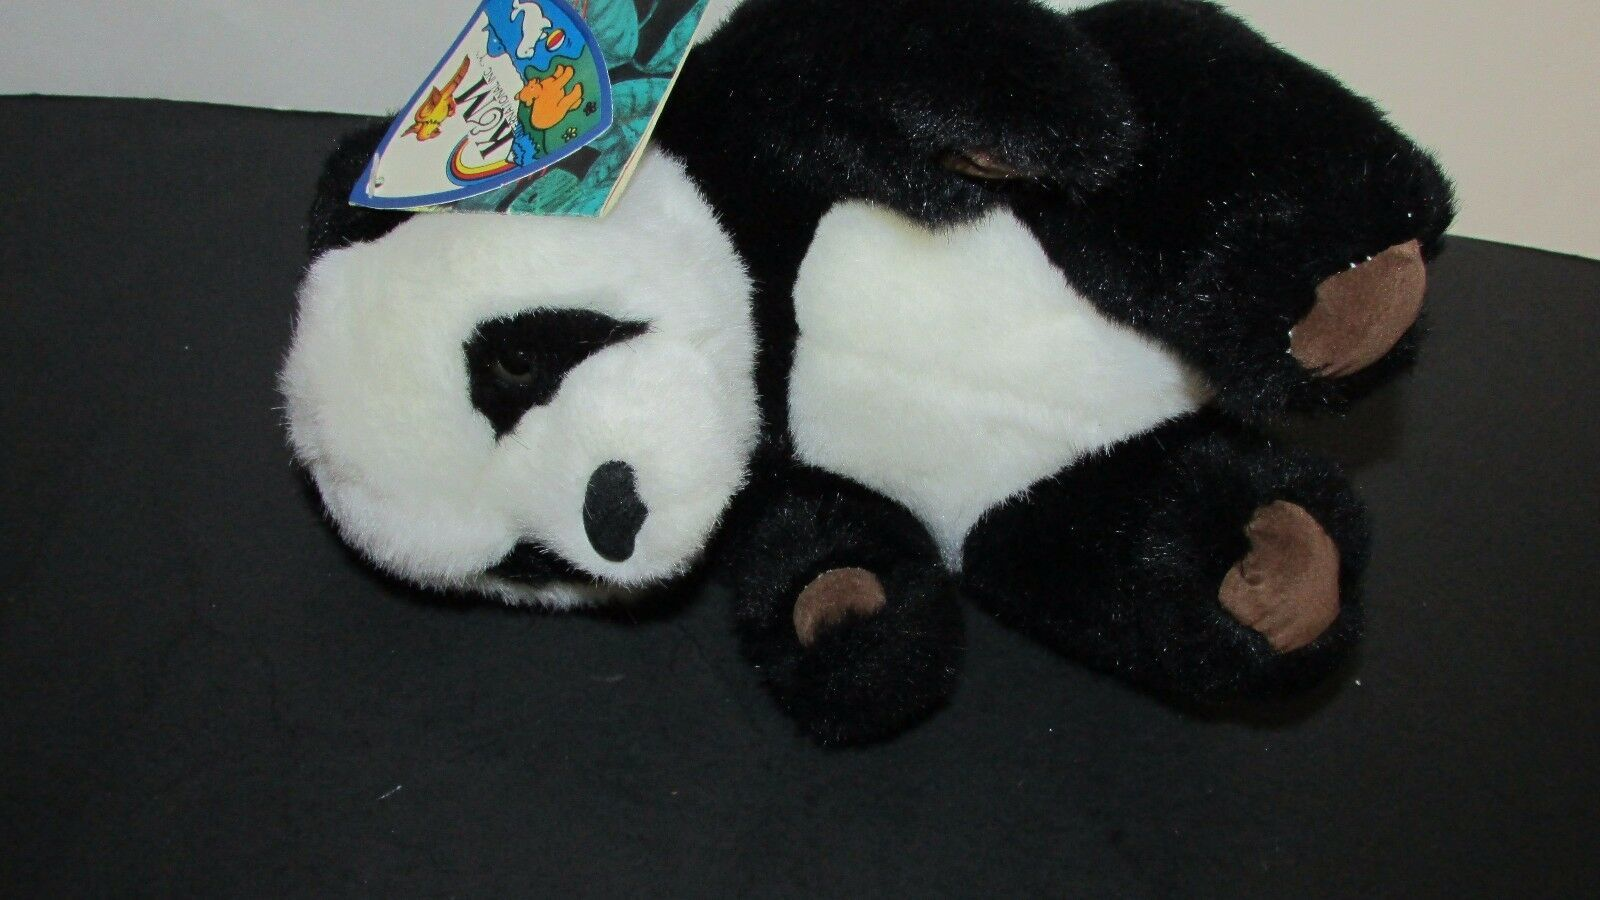 """Small Giant Panda plush brown suede feet foot pads K&M toys 1993 w/ tags 7.5"""" image 6"""